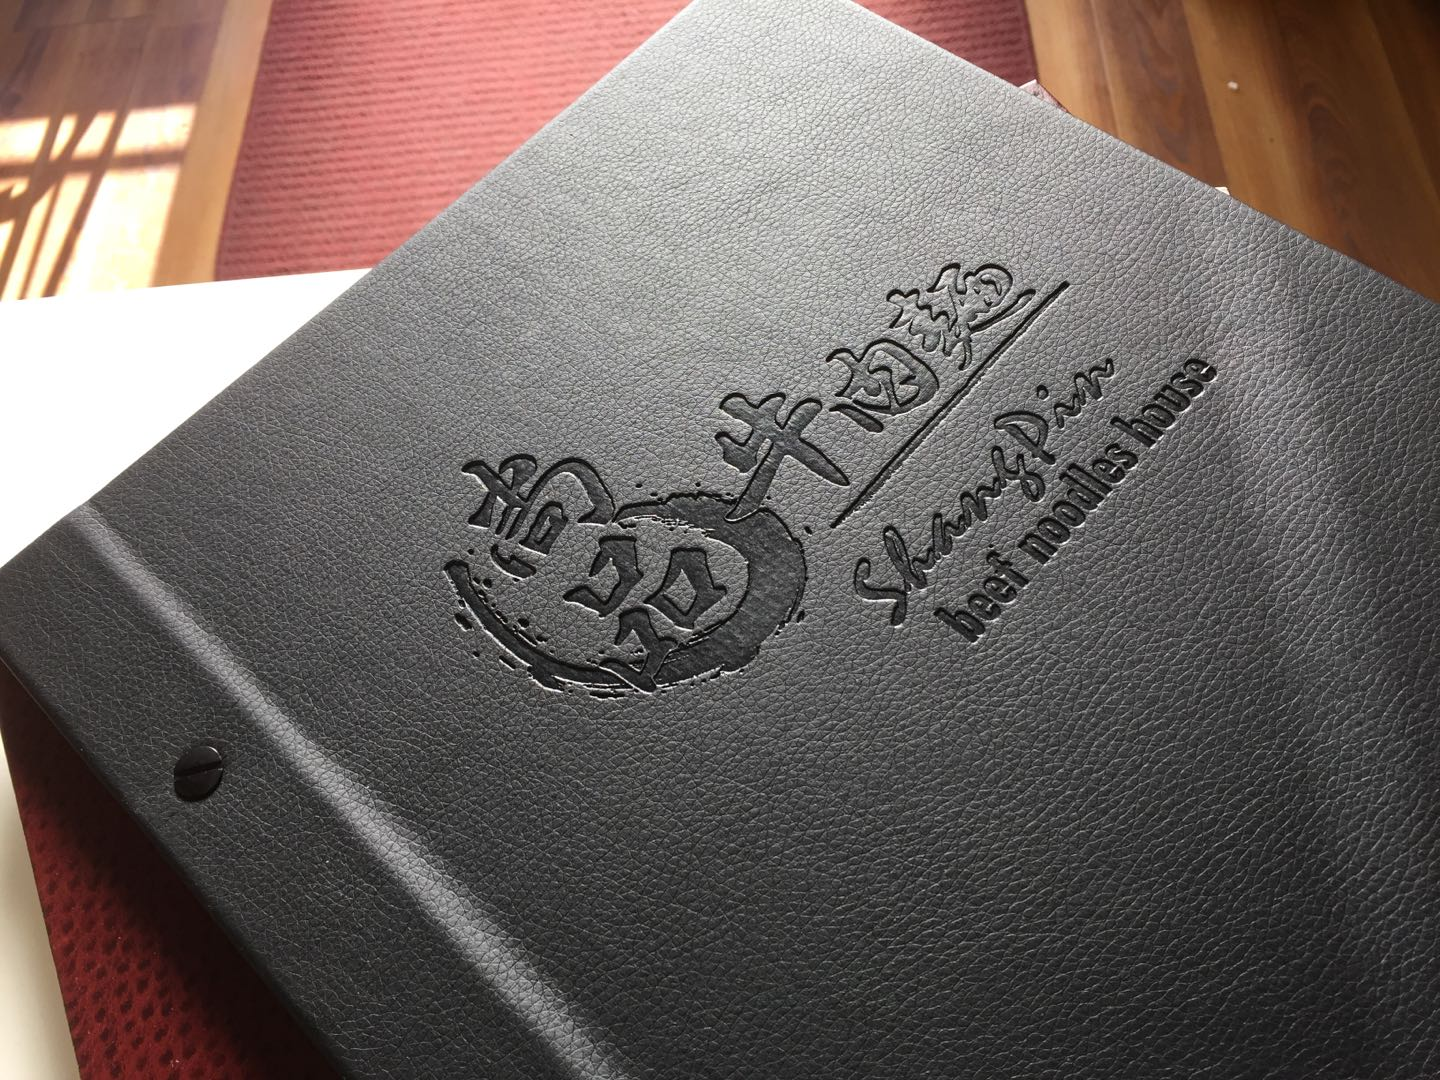 Restaurant Menu Cover02.jpg